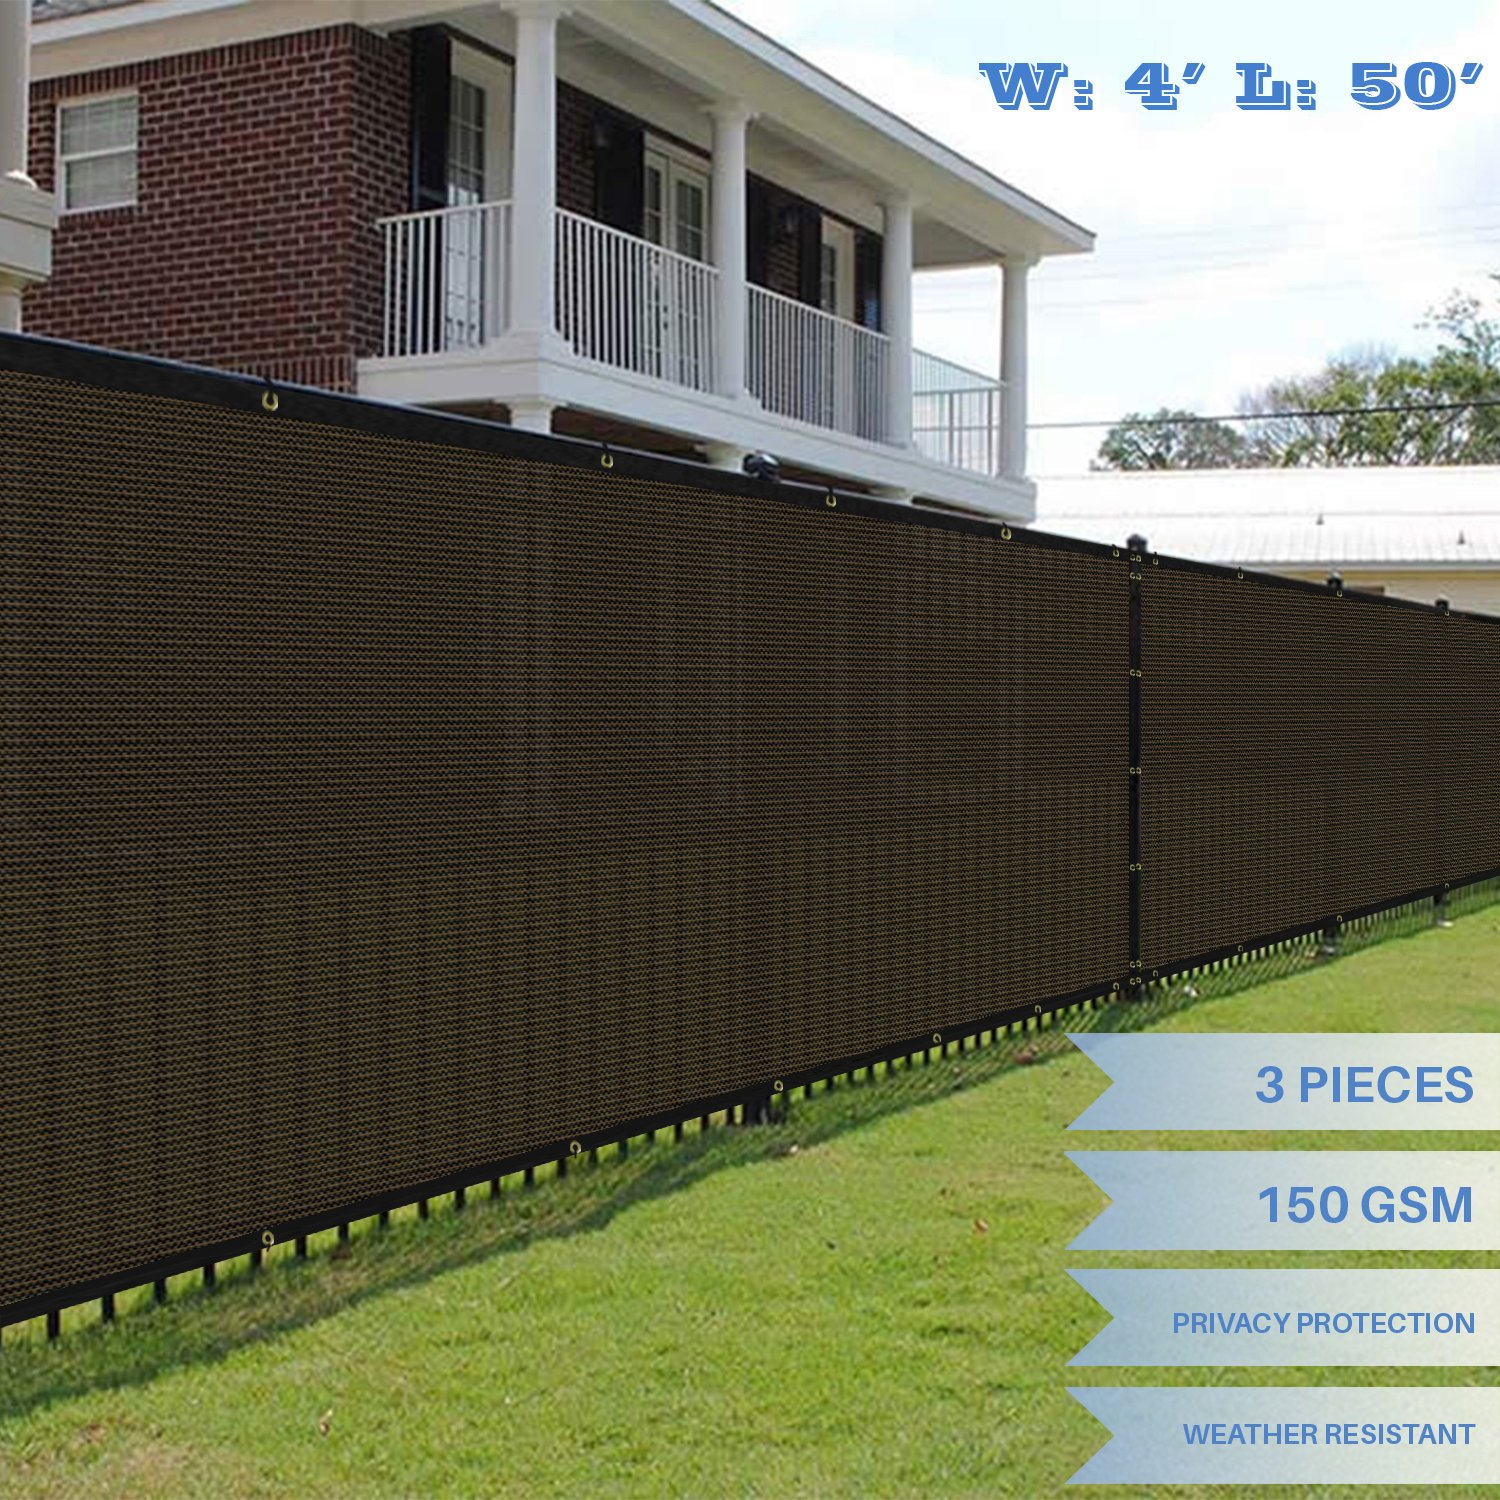 E&K Sunrise 4' x 50' Brown Fence Privacy Screen, Commercial Outdoor Backyard Shade Windscreen Mesh Fabric 3 Years Warranty (Customized Sizes Available) - Set of 3 by E&K Sunrise